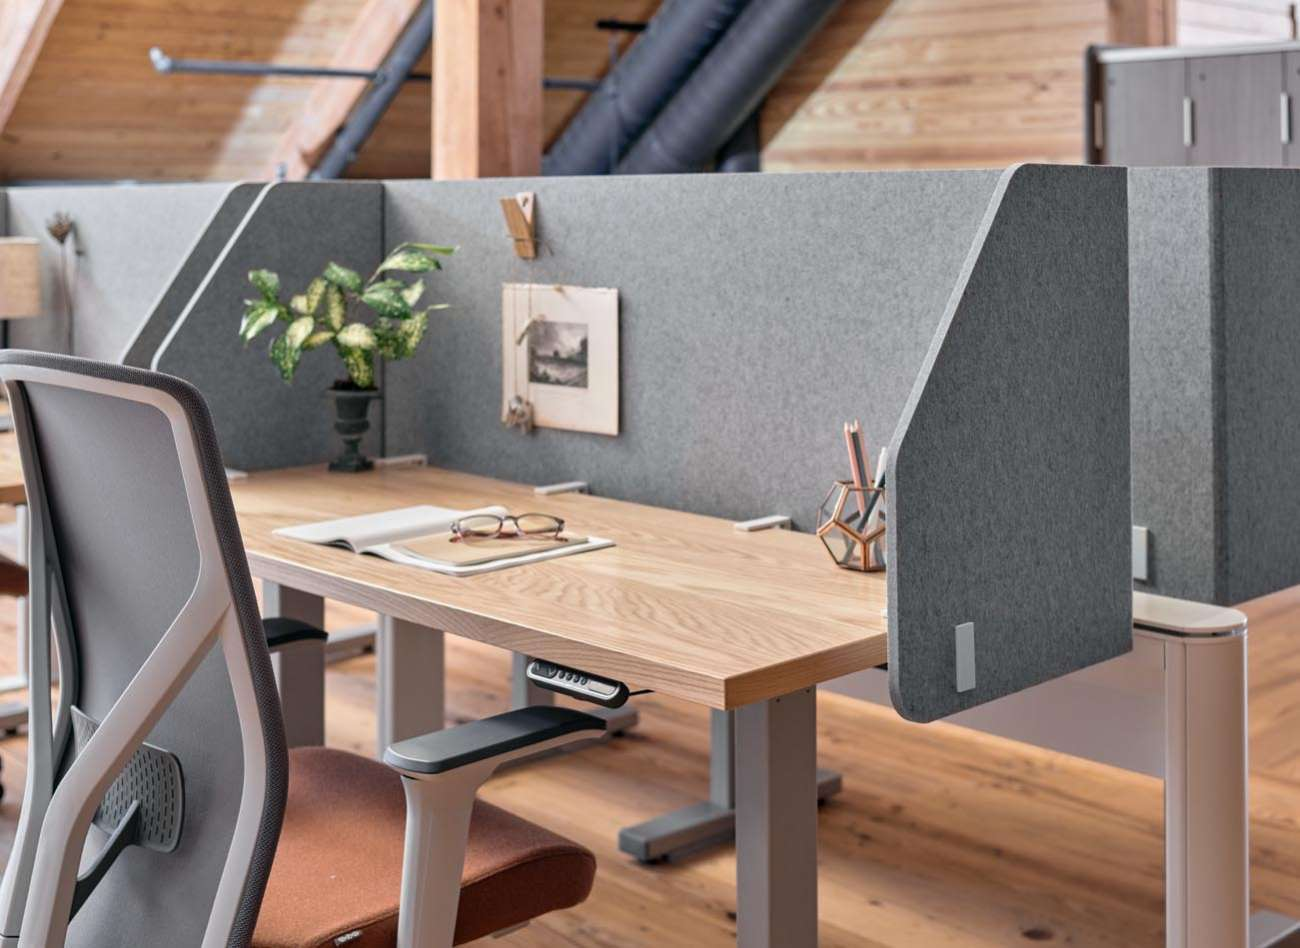 PET worksurface edge modesty and Zonal